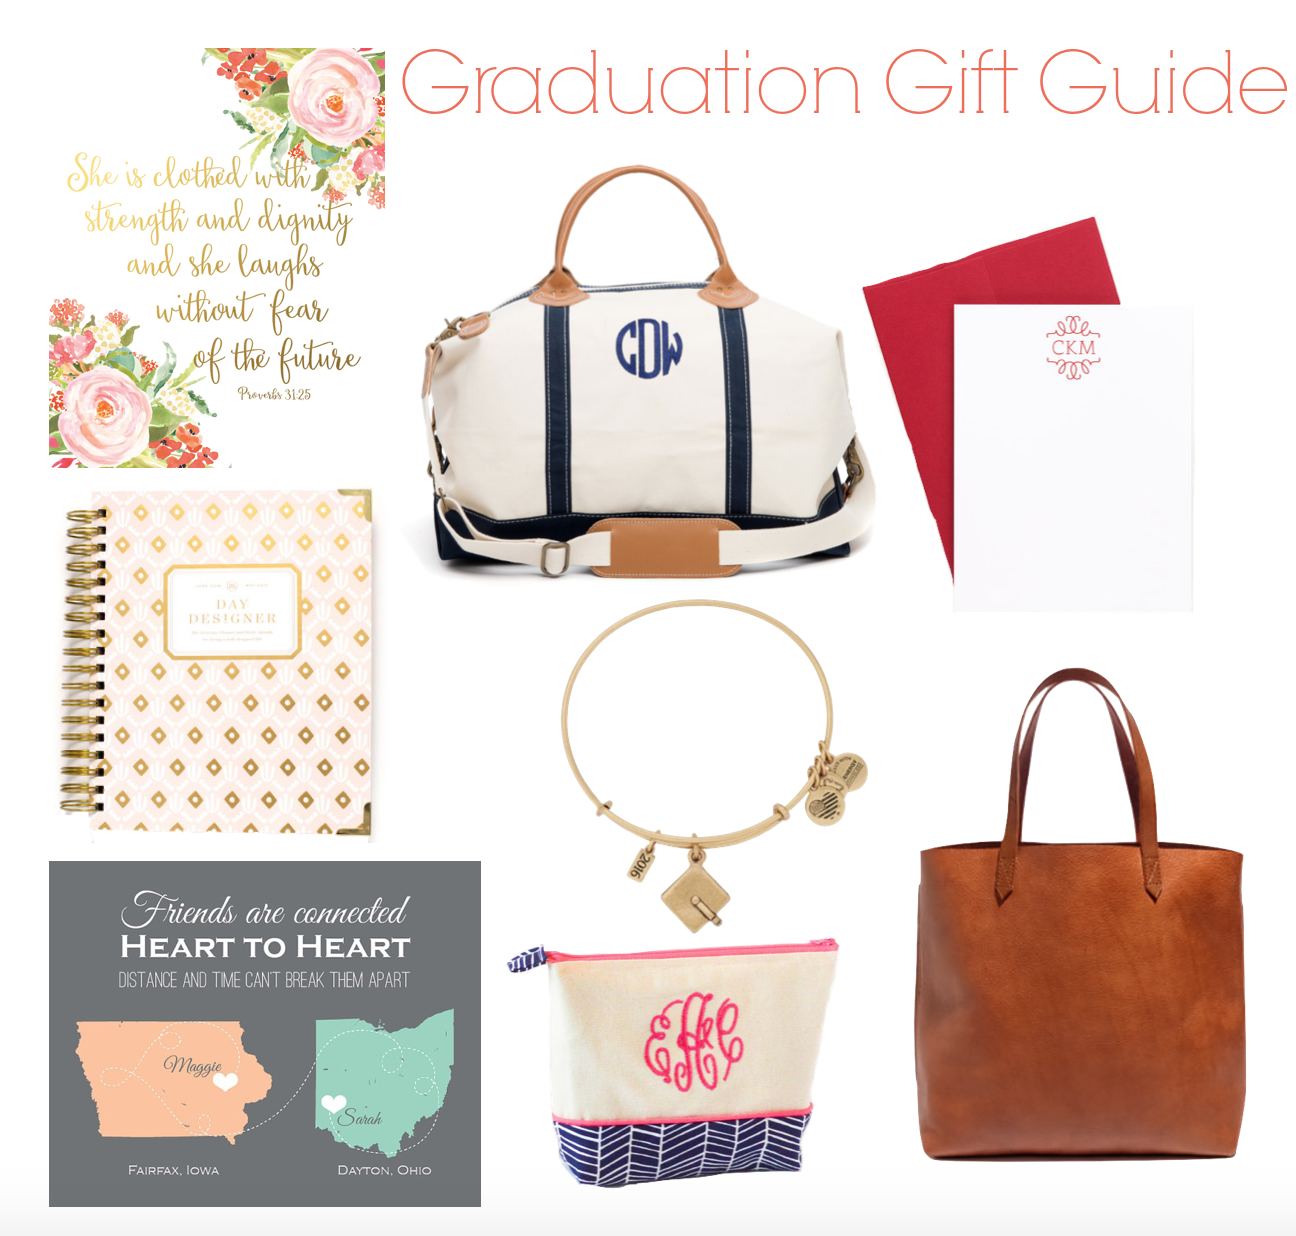 Graduation Gift Guide.png